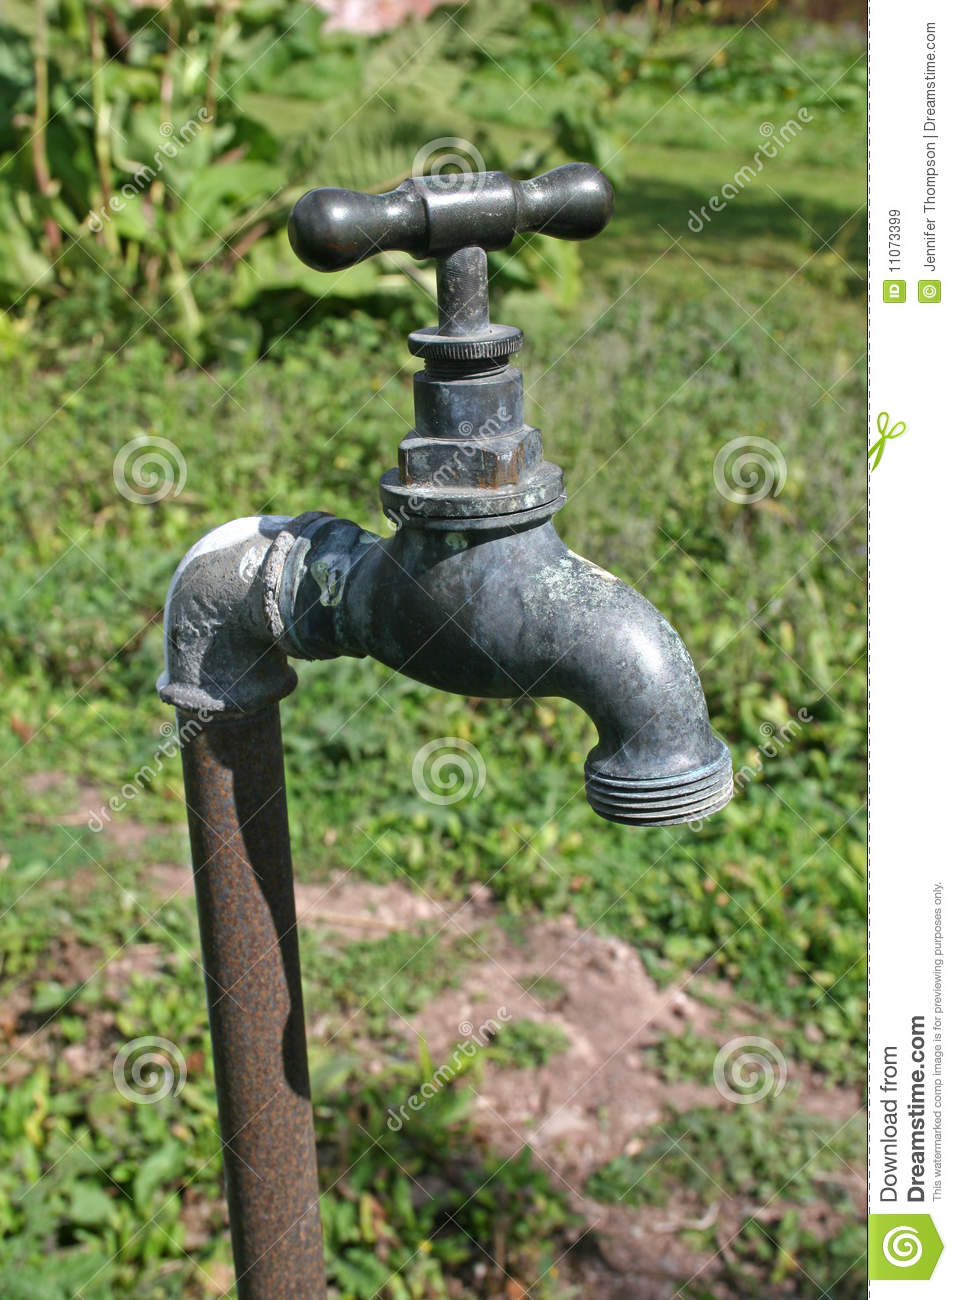 Garden Tap Stock Image Image Of Handle Spout Stand 11073399